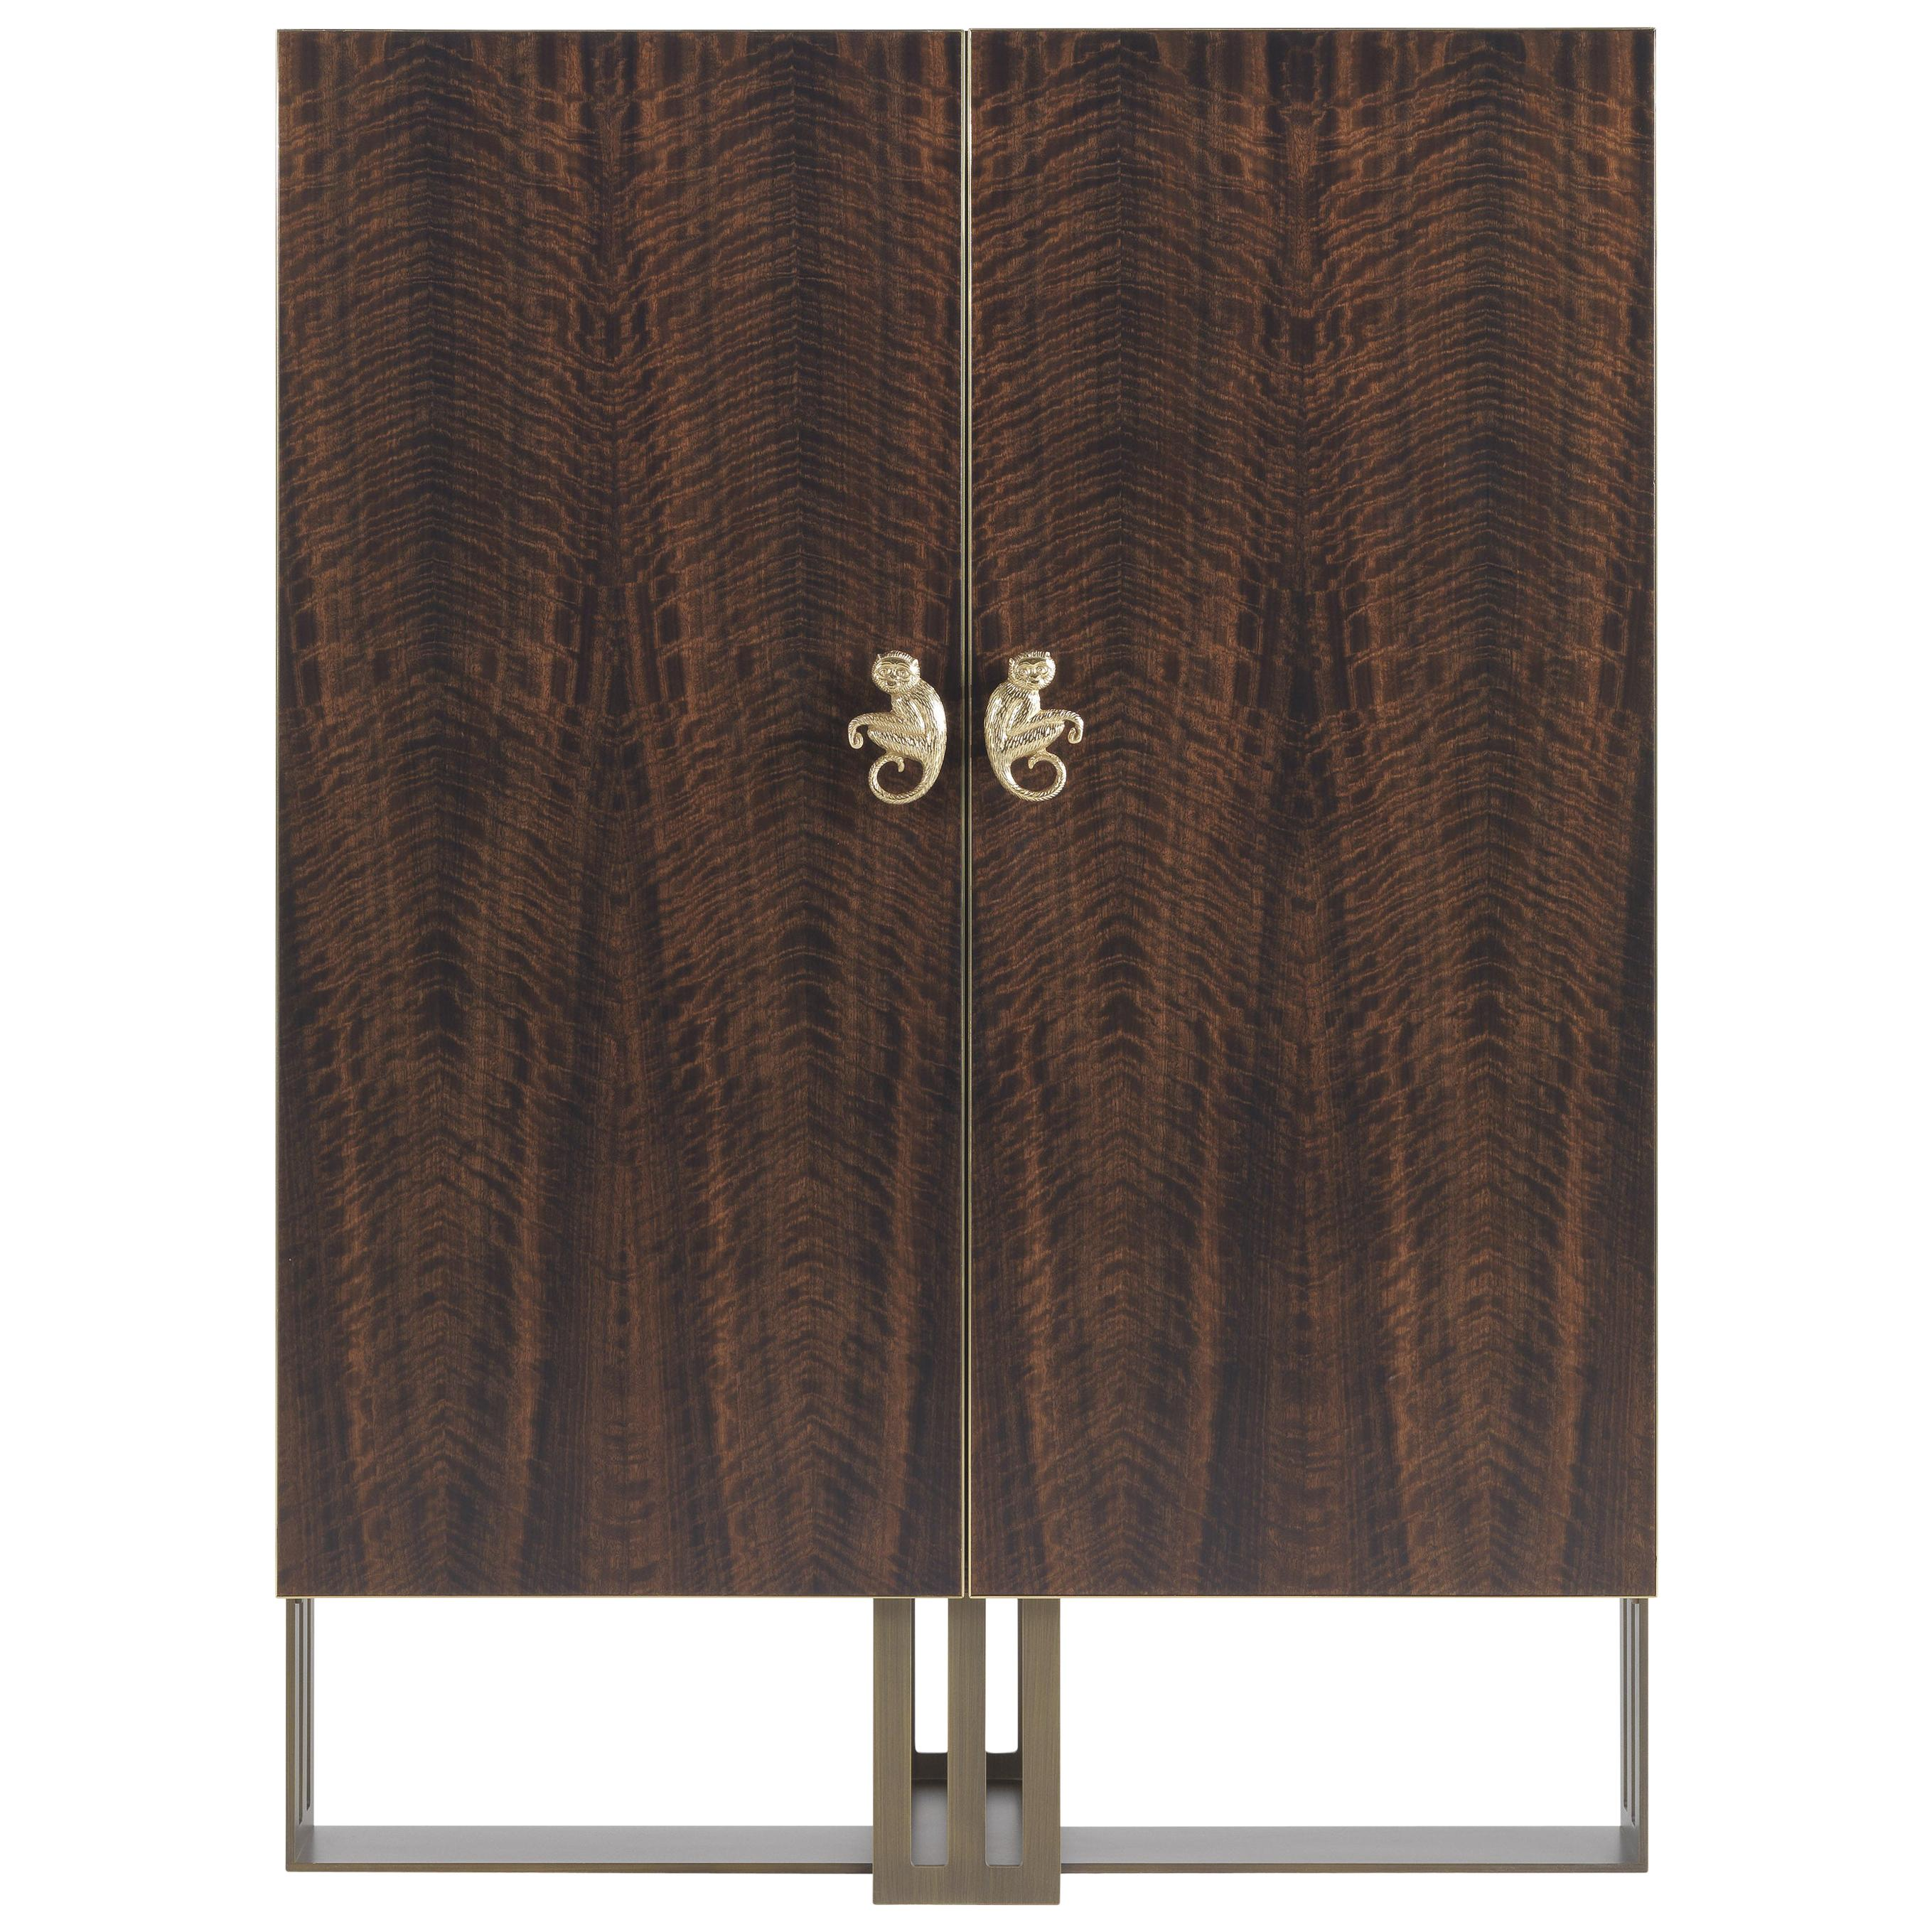 Etro Home Interiors Klee Cabinet in Wood and Metal